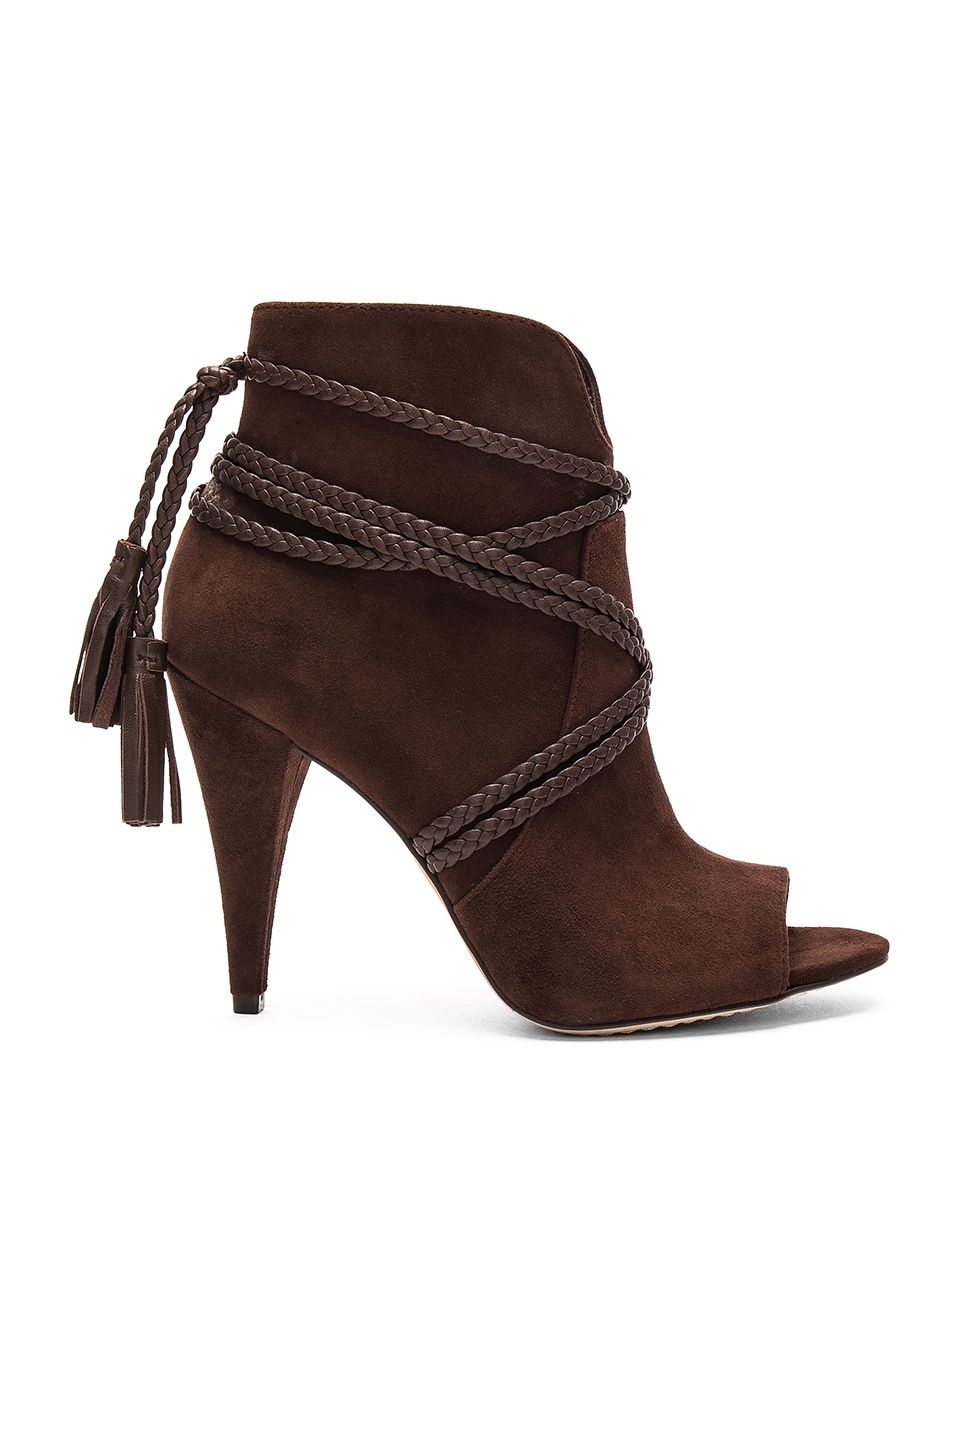 Photo of Astan Booties by Vince Camuto shoes